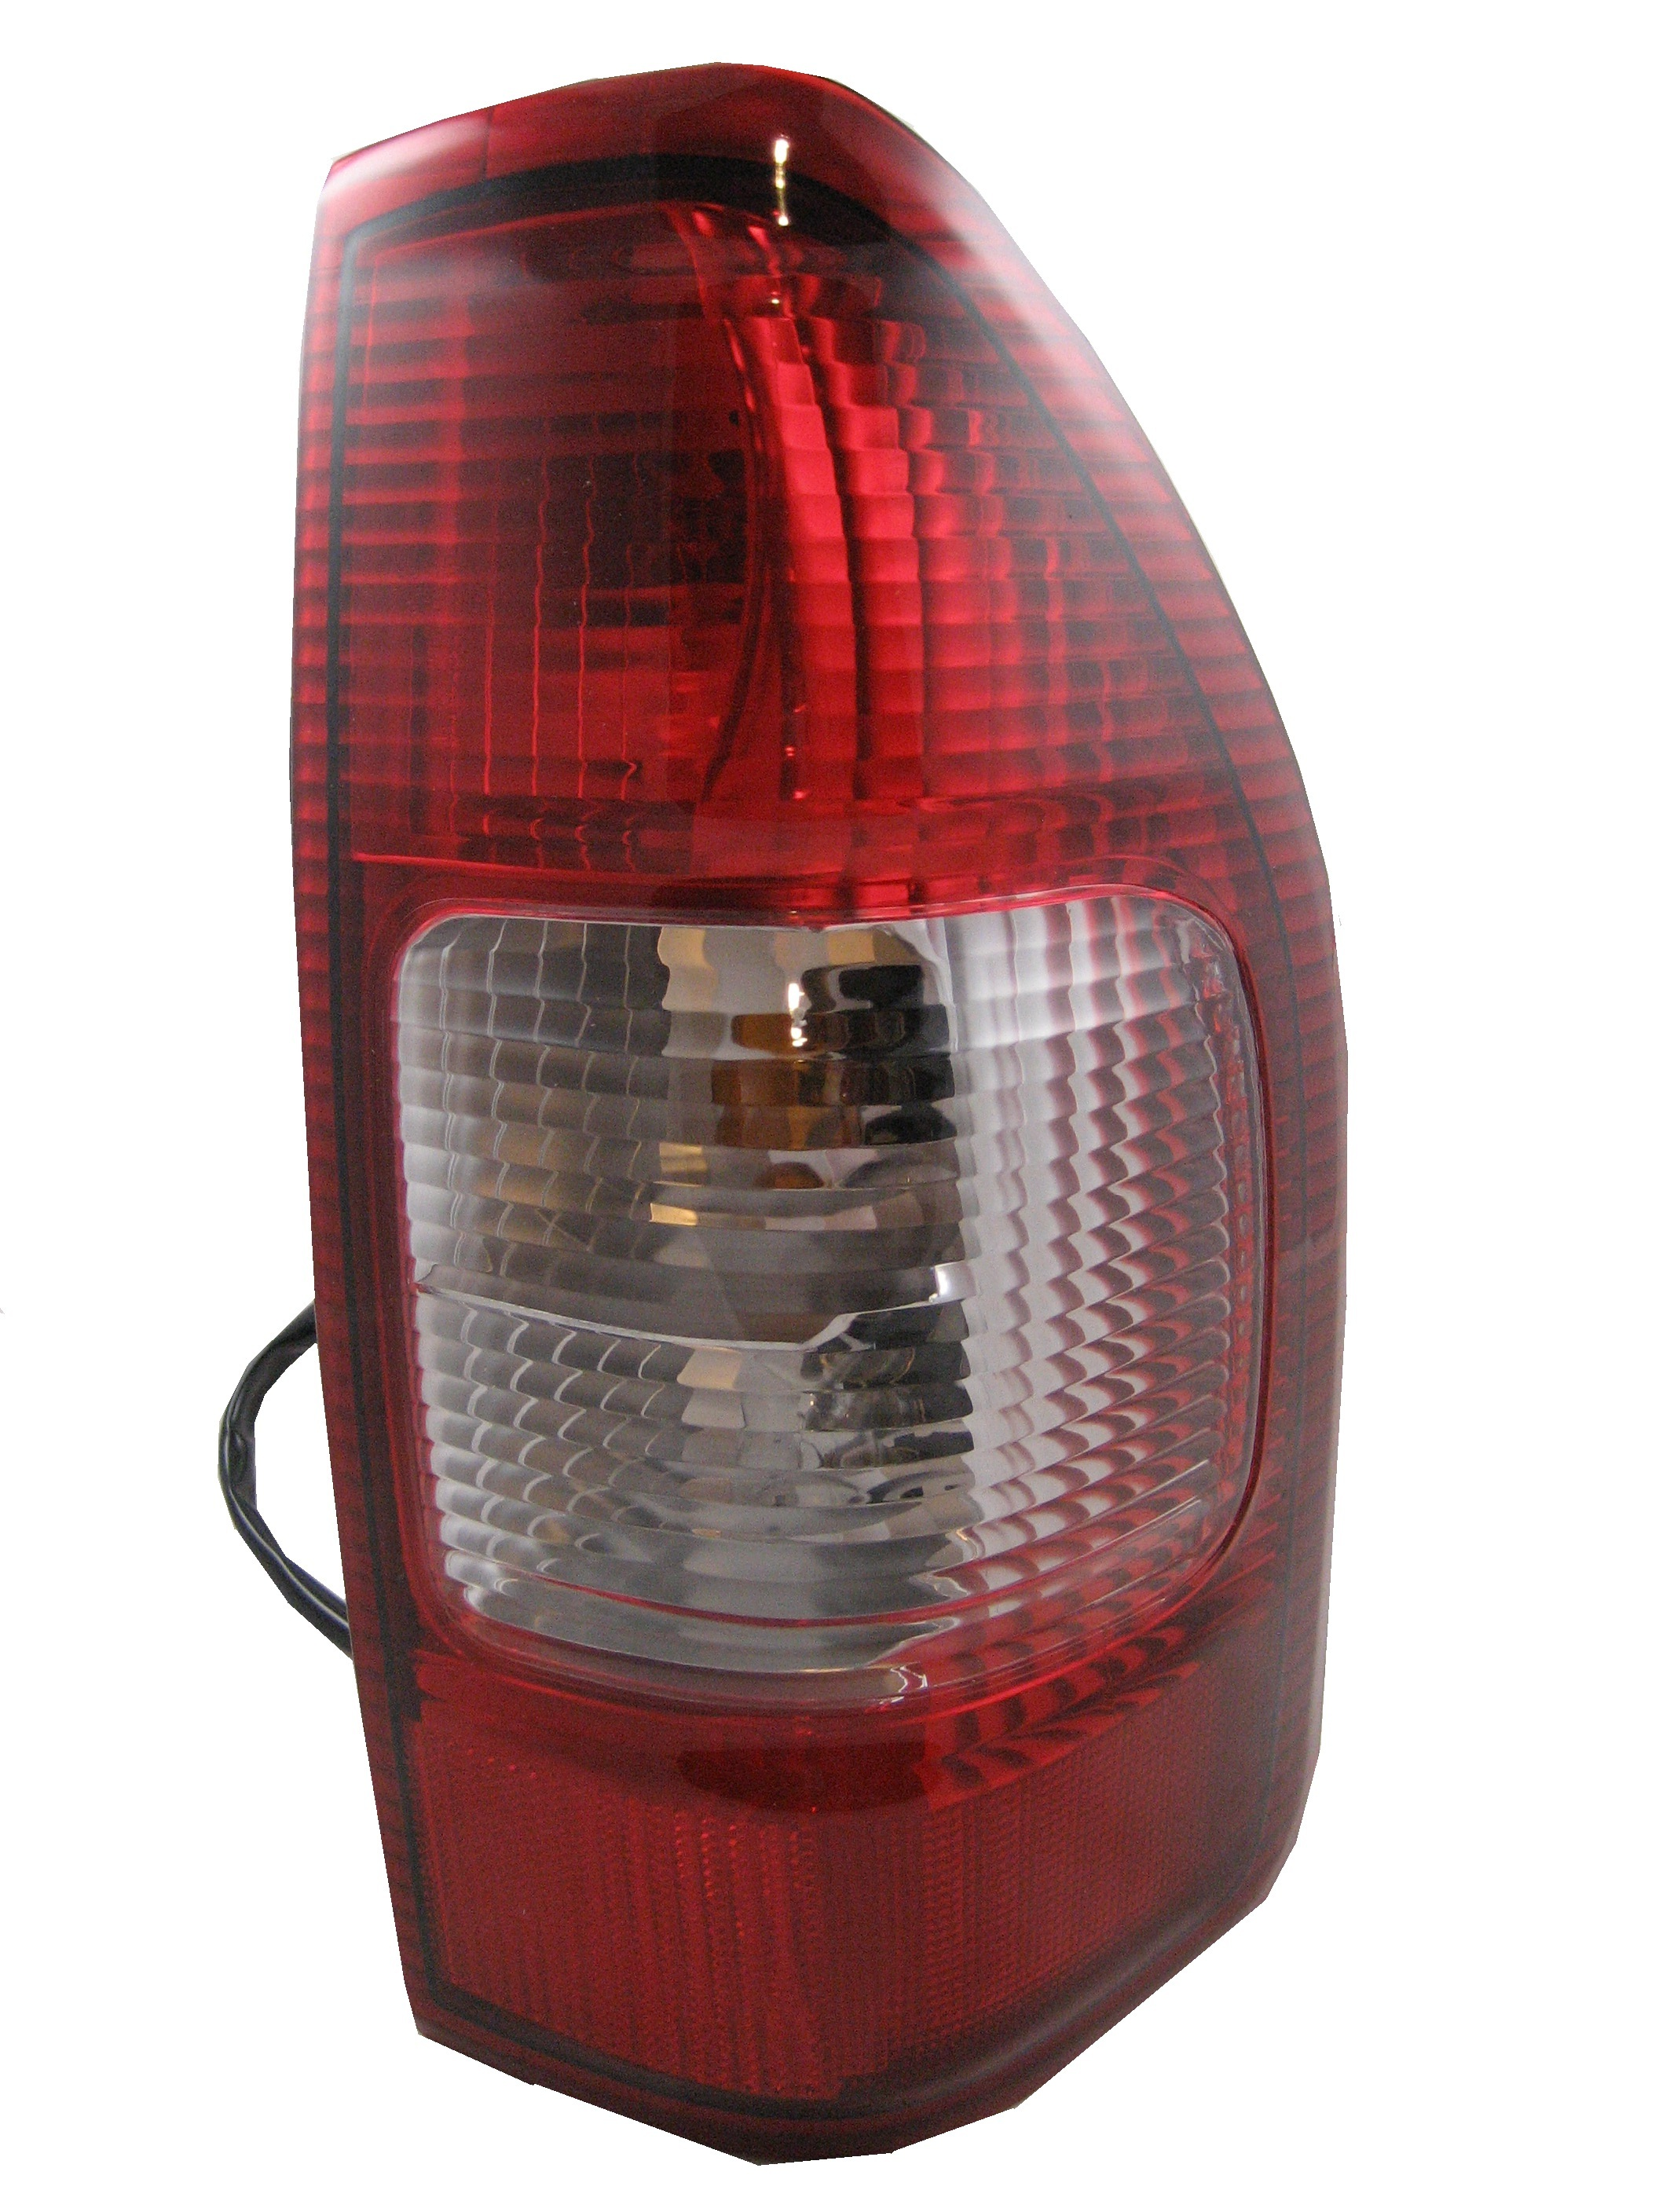 rear light rh for isuzu rodeo dmax denver pickup truck 2008 Isuzu Rodeo 2000 Isuzu Rodeo